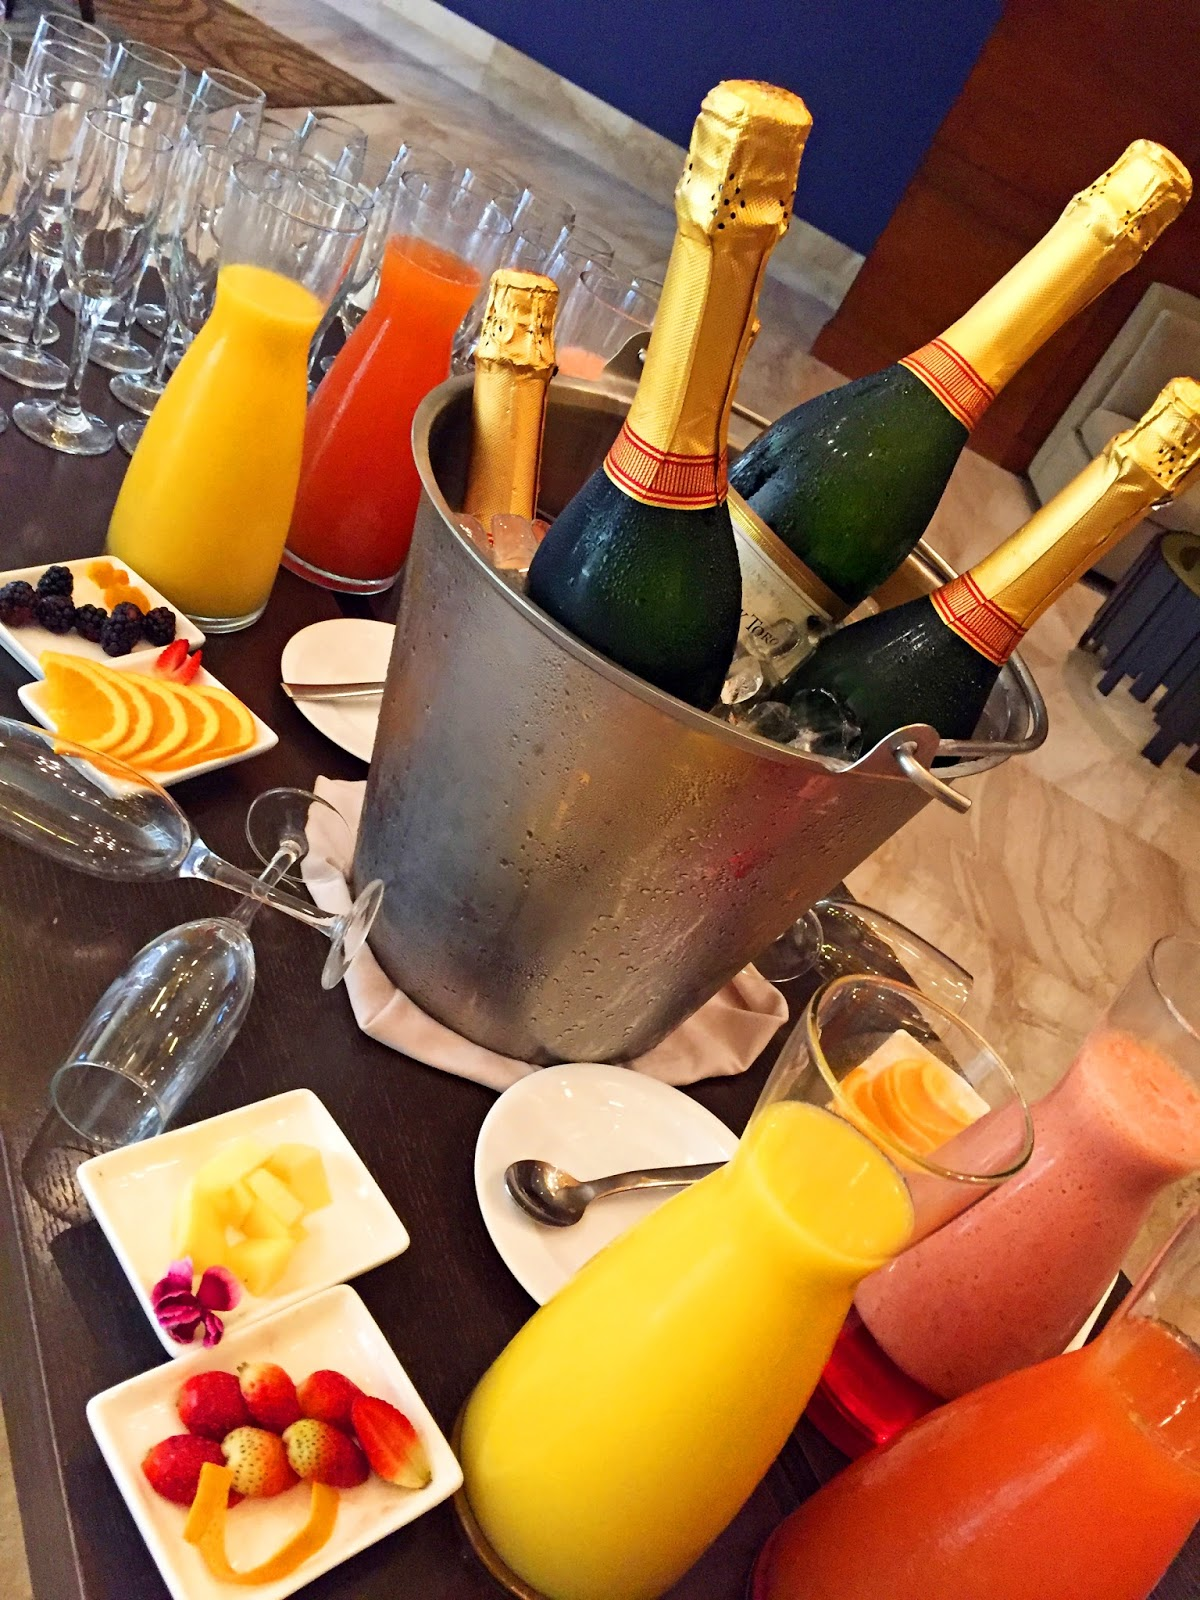 Enjoy your brunch with some delicious mimosas!